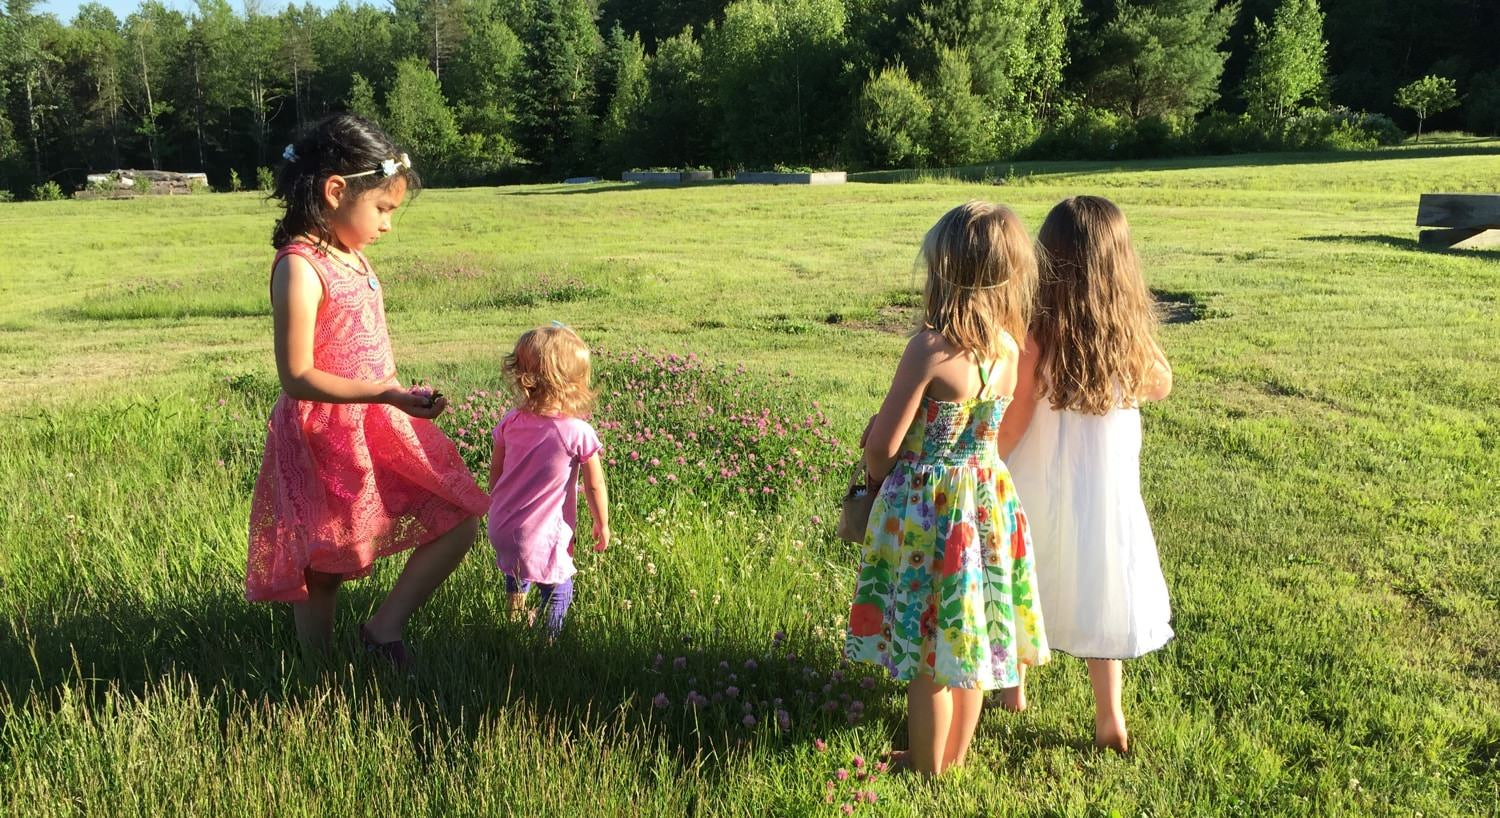 Four young girls wearing sundresses and playing in the grass